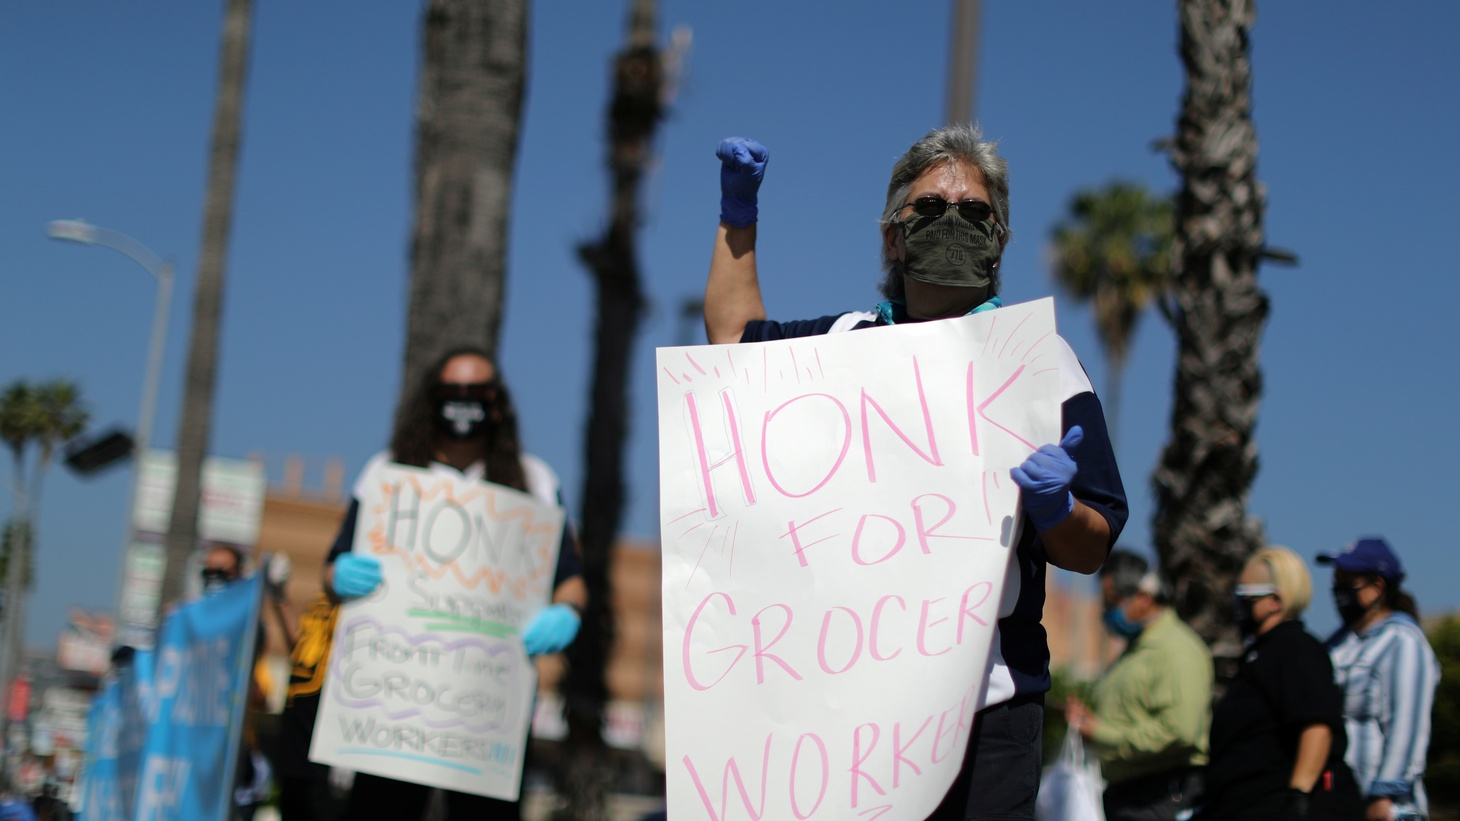 People protest outside Ralph's grocery store, where they say 19 workers have been infected, as the global outbreak of the coronavirus disease (COVID-19) continues, in Hollywood, Los Angeles, California, U.S., May 1, 2020.